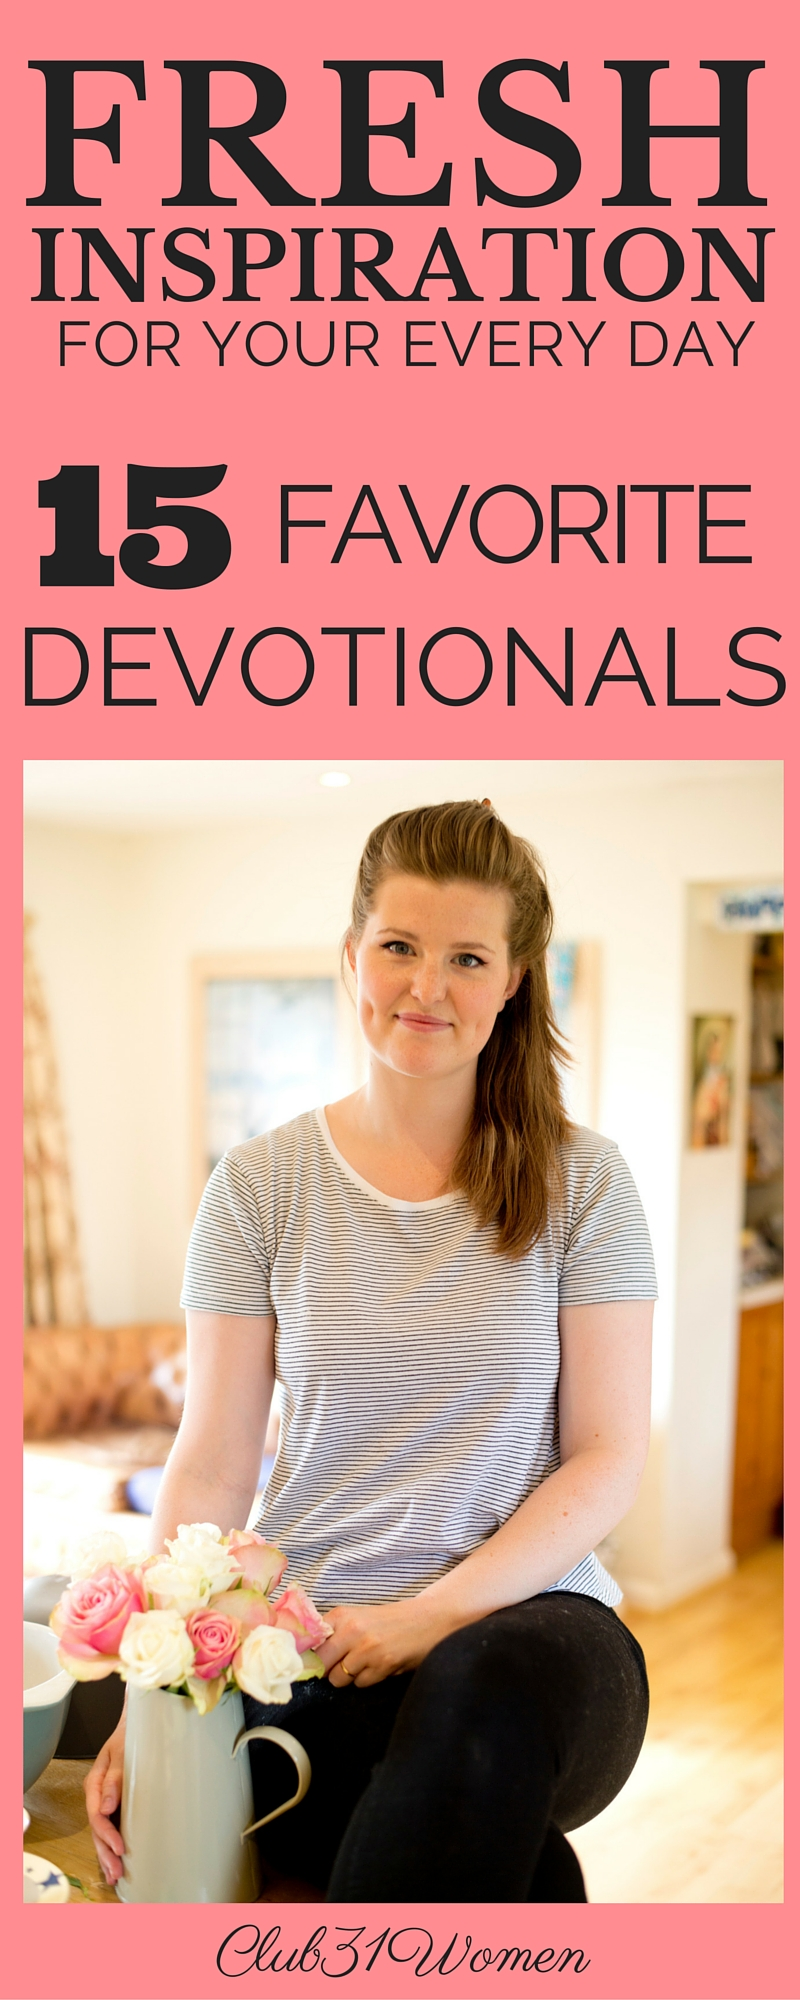 Fresh Inspiration for Your Every Day: 15 Favorite Devotionals to Pick From